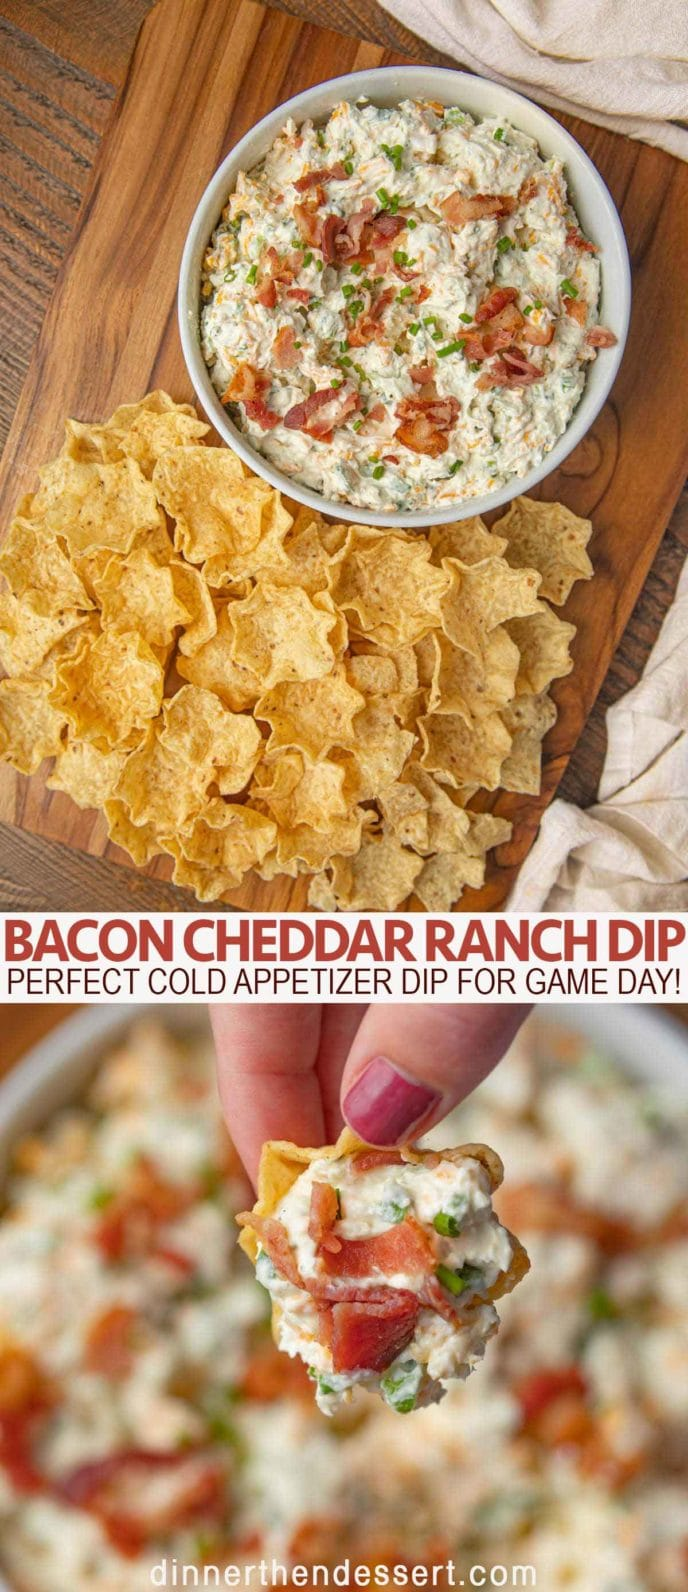 Bacon Cheddar Ranch Dip with Tortilla Chips